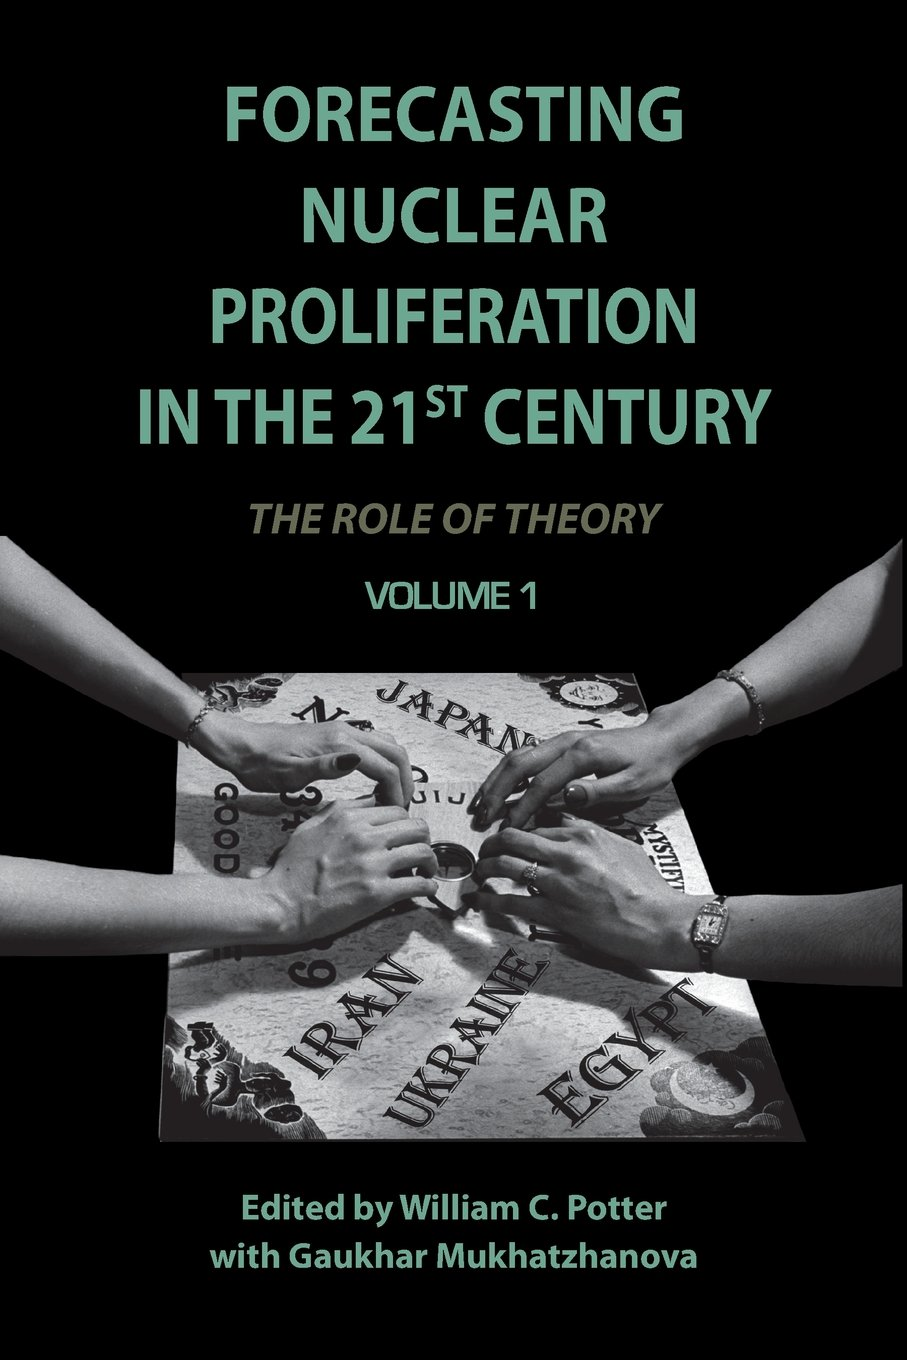 Forecasting Nuclear Proliferation in the 21st Century: Volume 1 The Role of Theory pdf epub